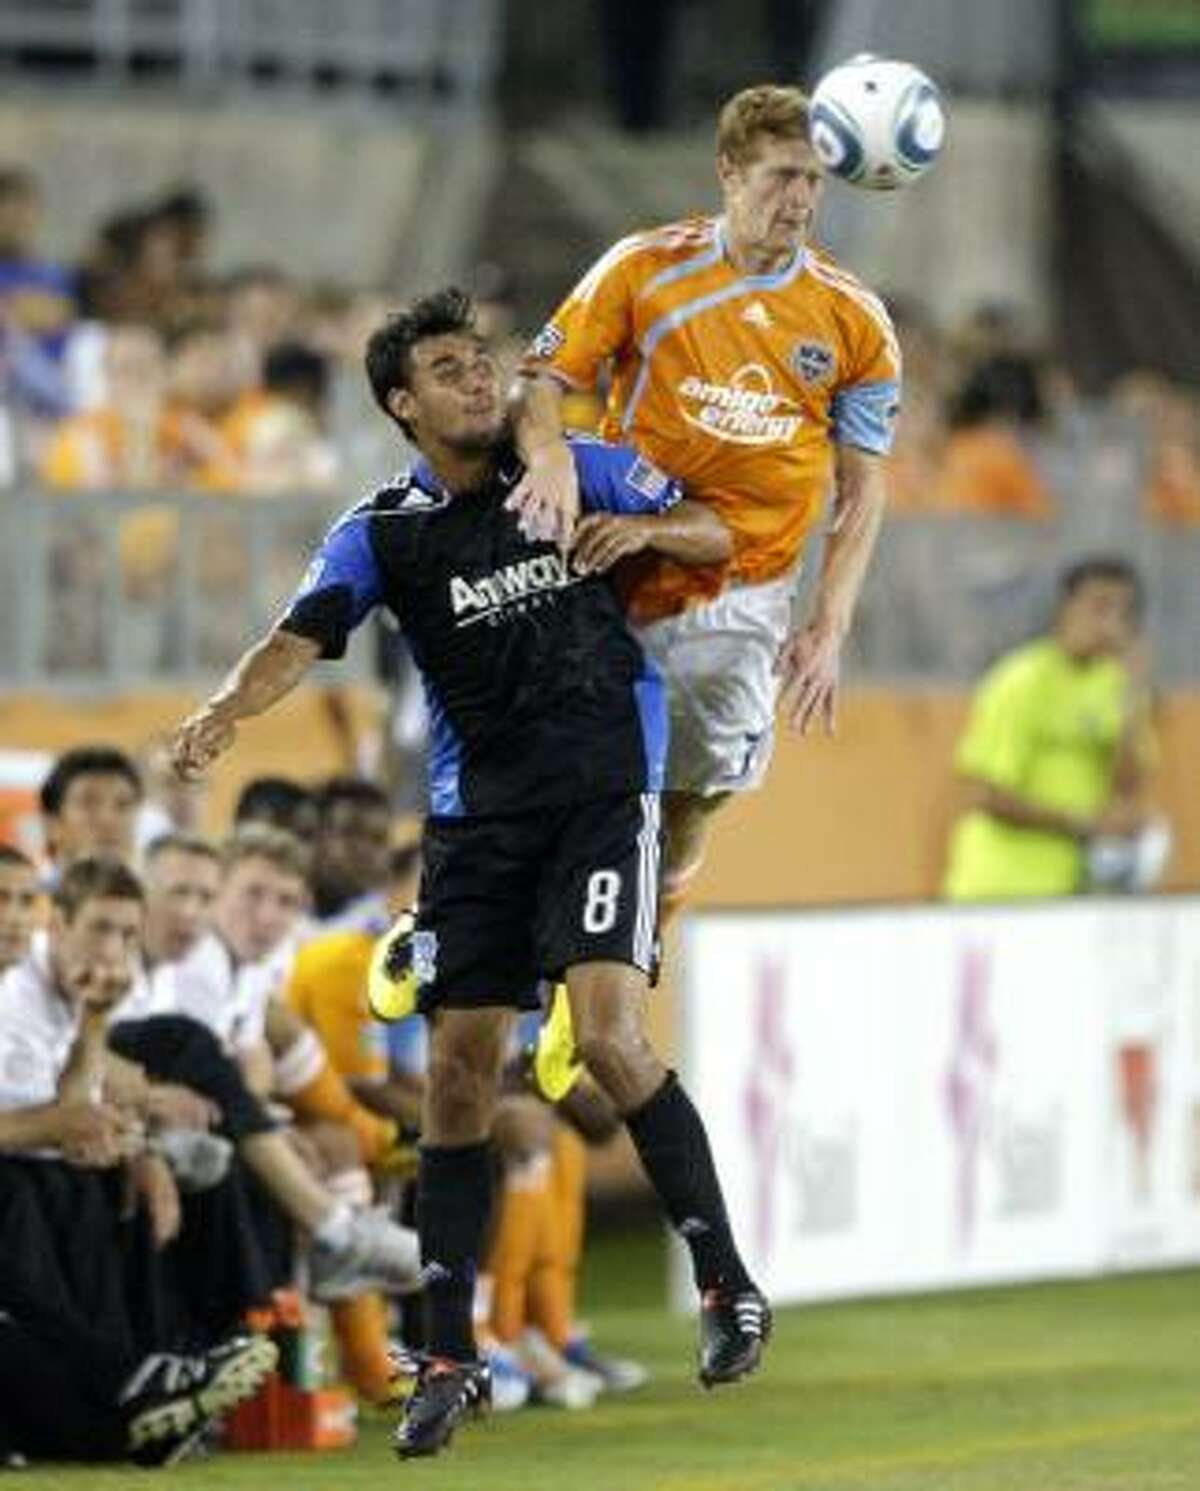 The Dynamo's Andrew Hainult goes over the top of Chris Wondolowski for a header.